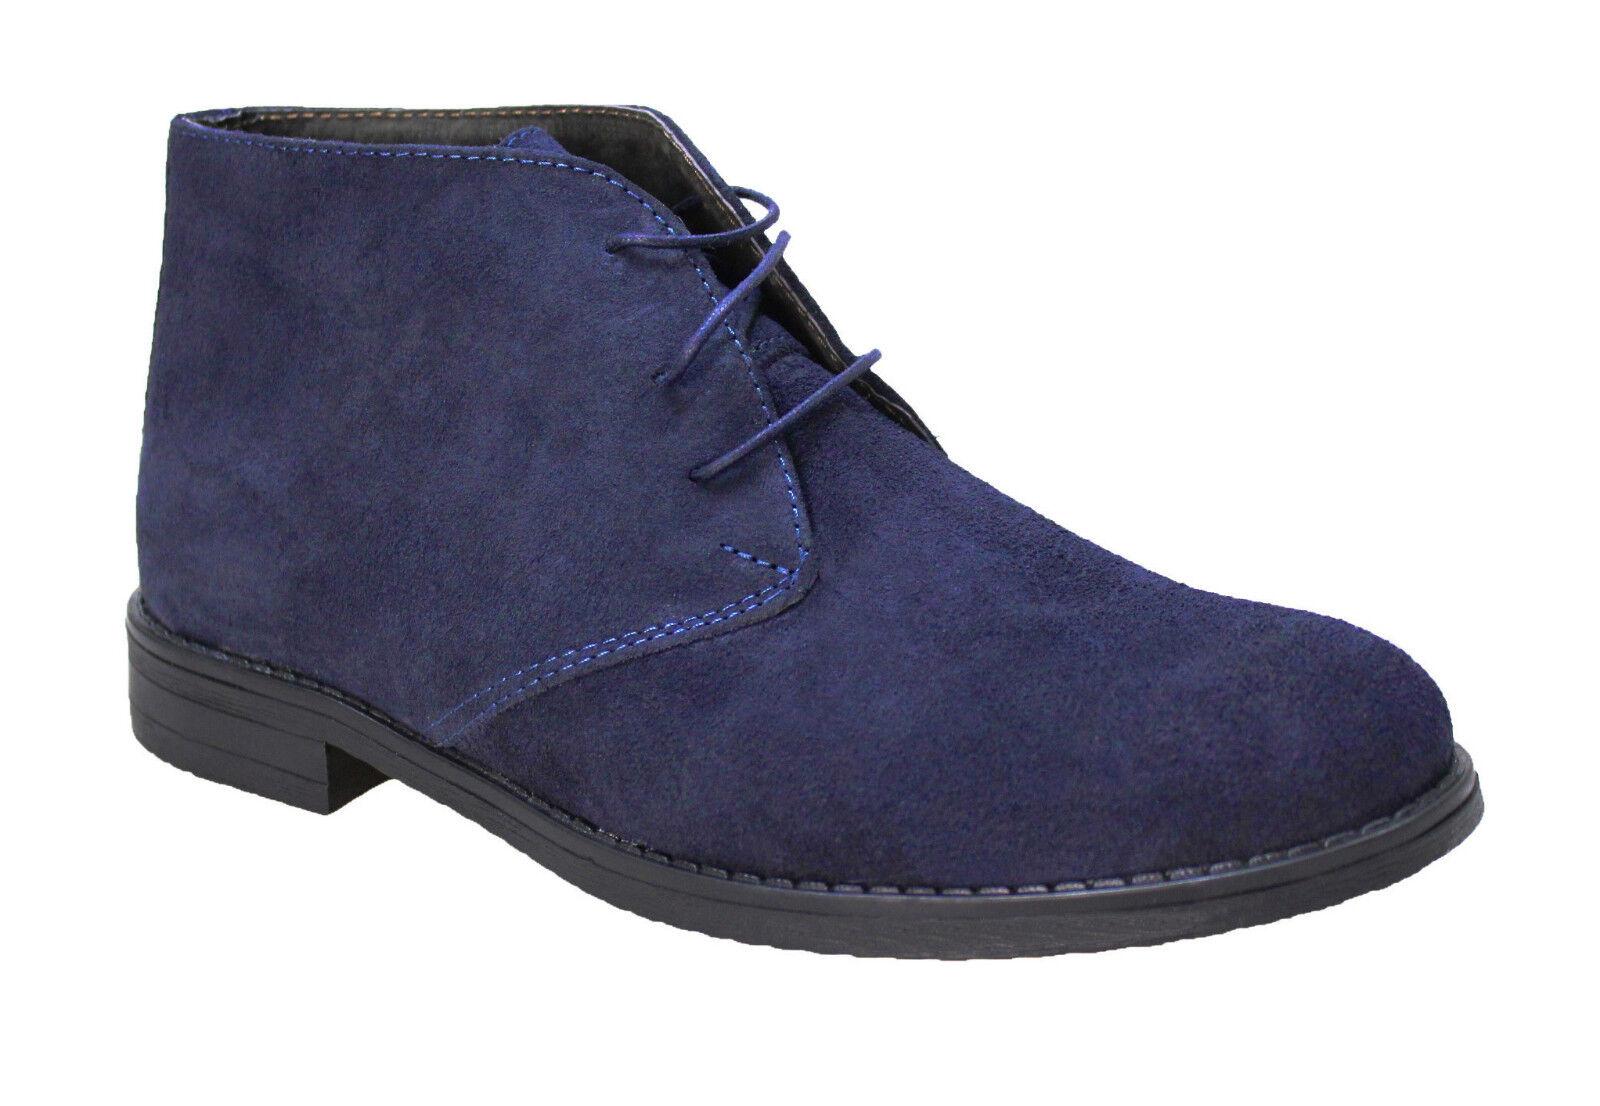 MOCASSINI UOMO DIAMOND CASUAL ELEGANTI NERO SCARPE IN ECOPELLE PRIMAVERA ESTATE